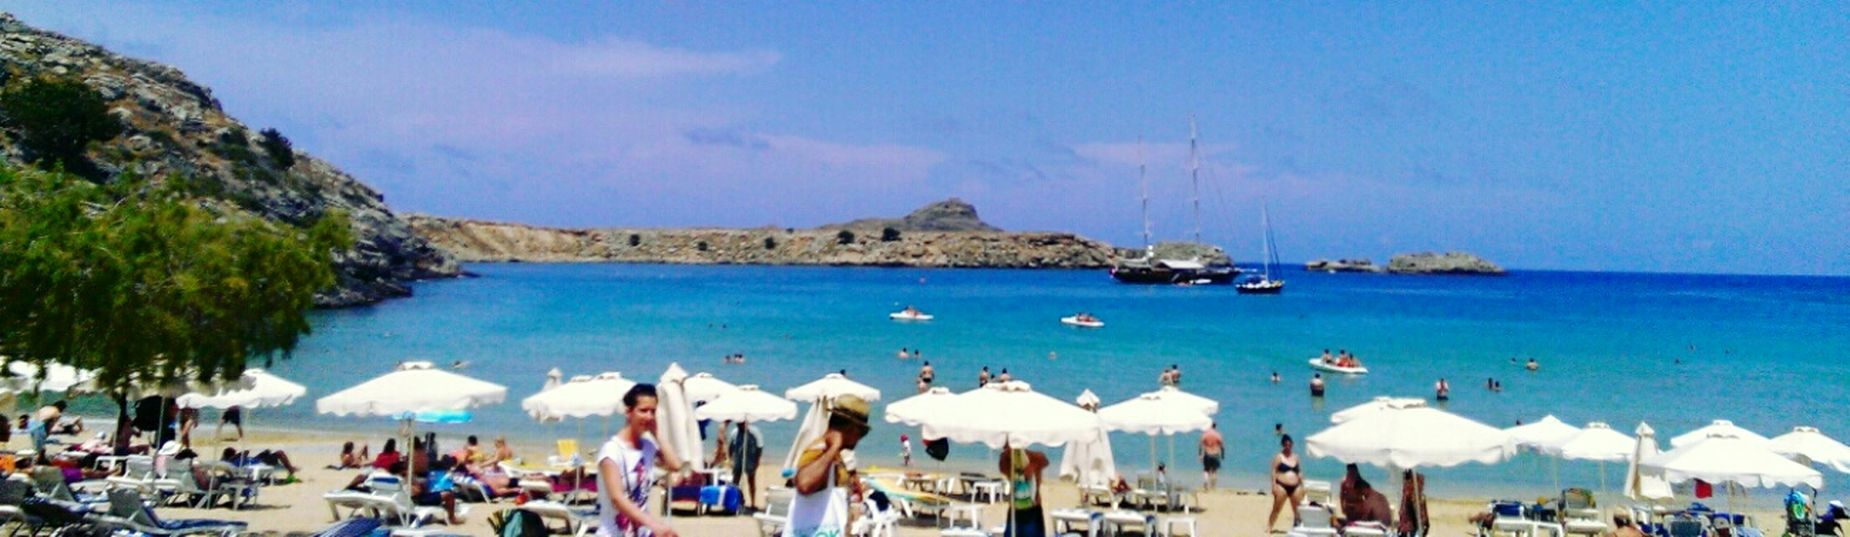 My favourite beach in the world, Lindos, Greece 🌊⛵🏊🏄 Rhodos Rhodes Greece Life Is A Beach Beach Beach Photography Nature Nature_collection Summer Holidays Beachphotography